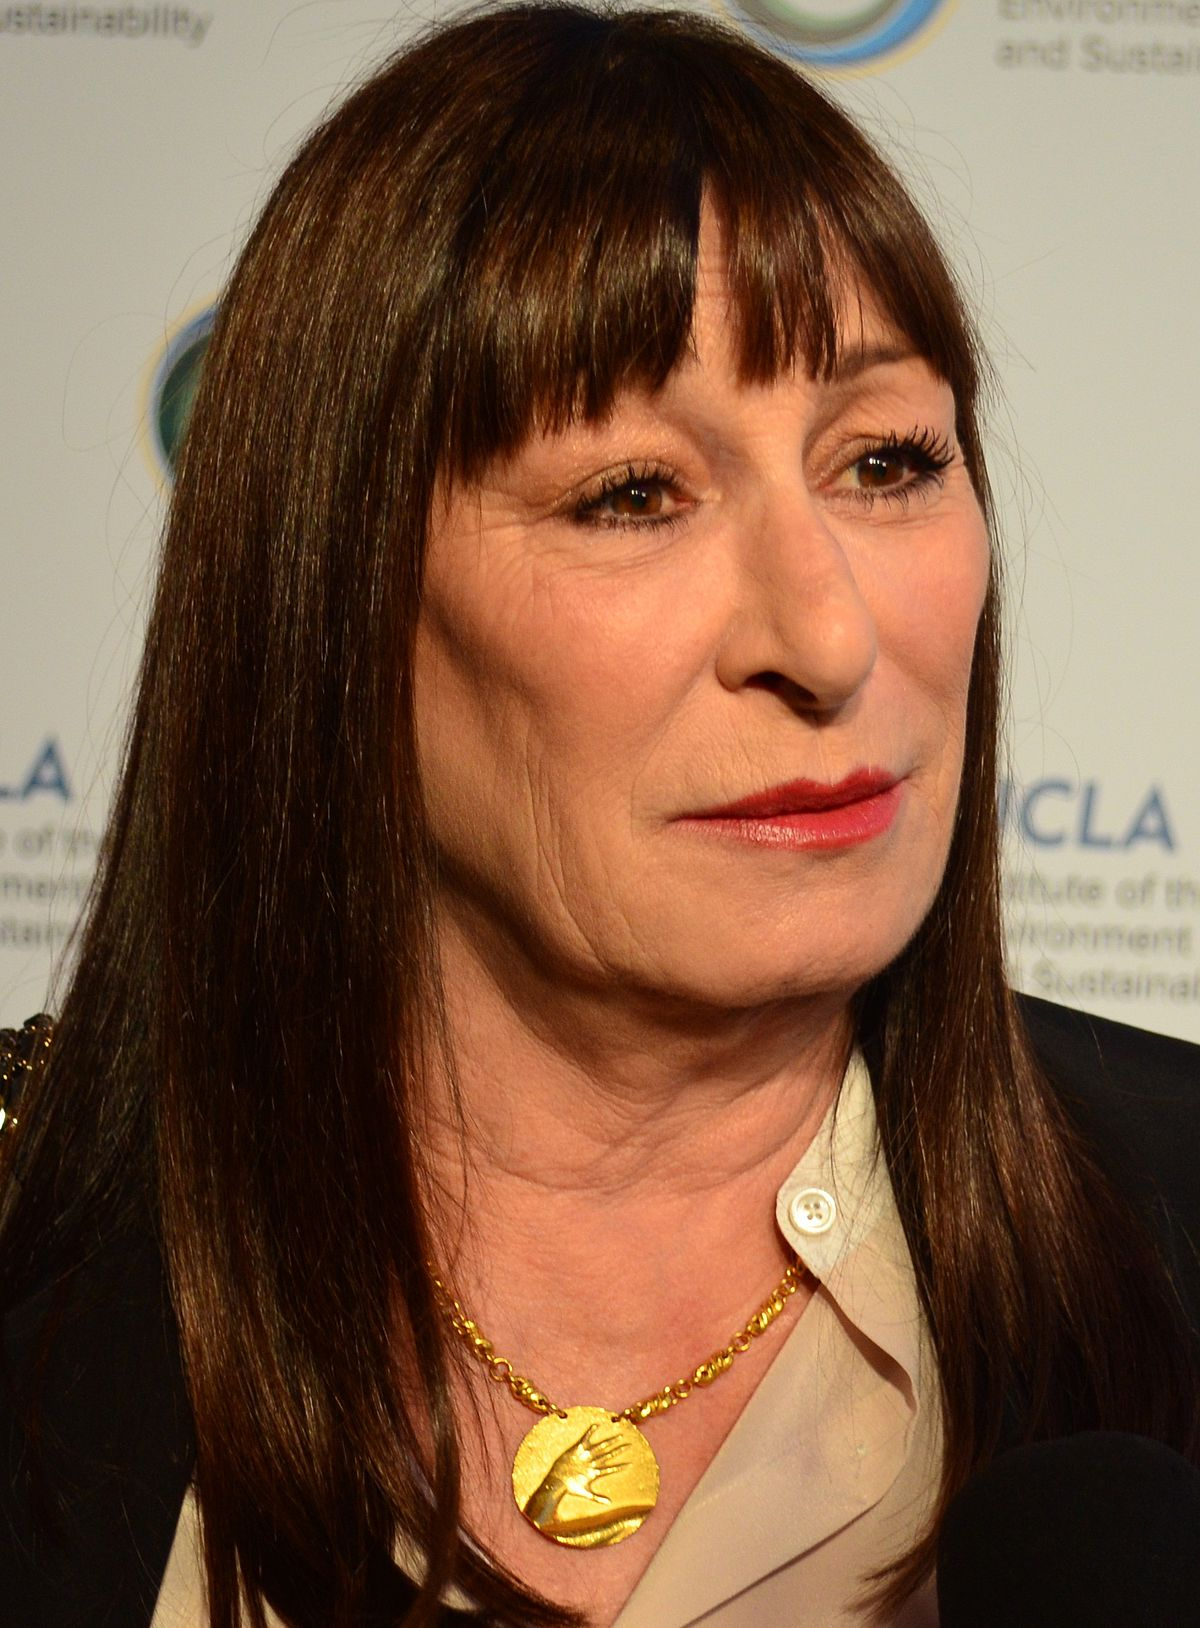 Anjelica is time standing still